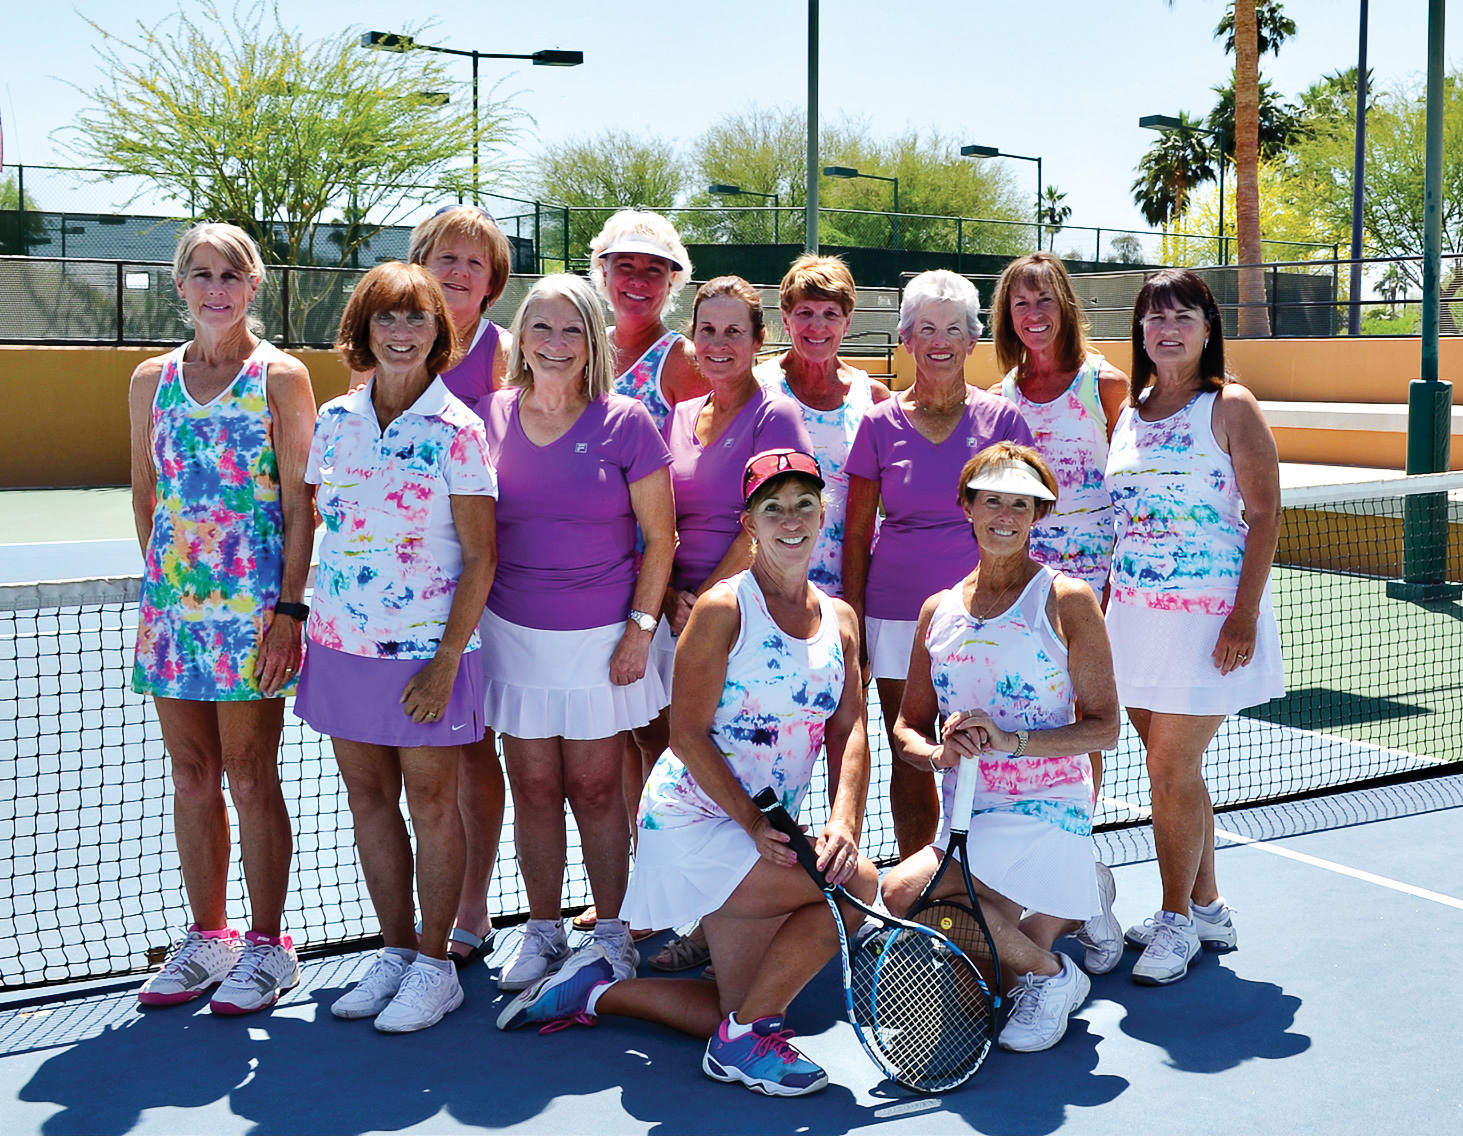 Passion's team members, kneeling (left to right): Joan Patchin and Lynne Carlyle; second row: Vikki Constable, Karyn Swinford, Cindy Henry, Barbara Camozzi, Pat Owens, and Pat Ingalls; back row: Lorinne Banister, Kathy Carver, Cooky O'Brien, and Debbie Welsh; missing from picture: Myrna Bodner, Brenda Cook, Sara Foster, Karen Kattar, and Jill Santy